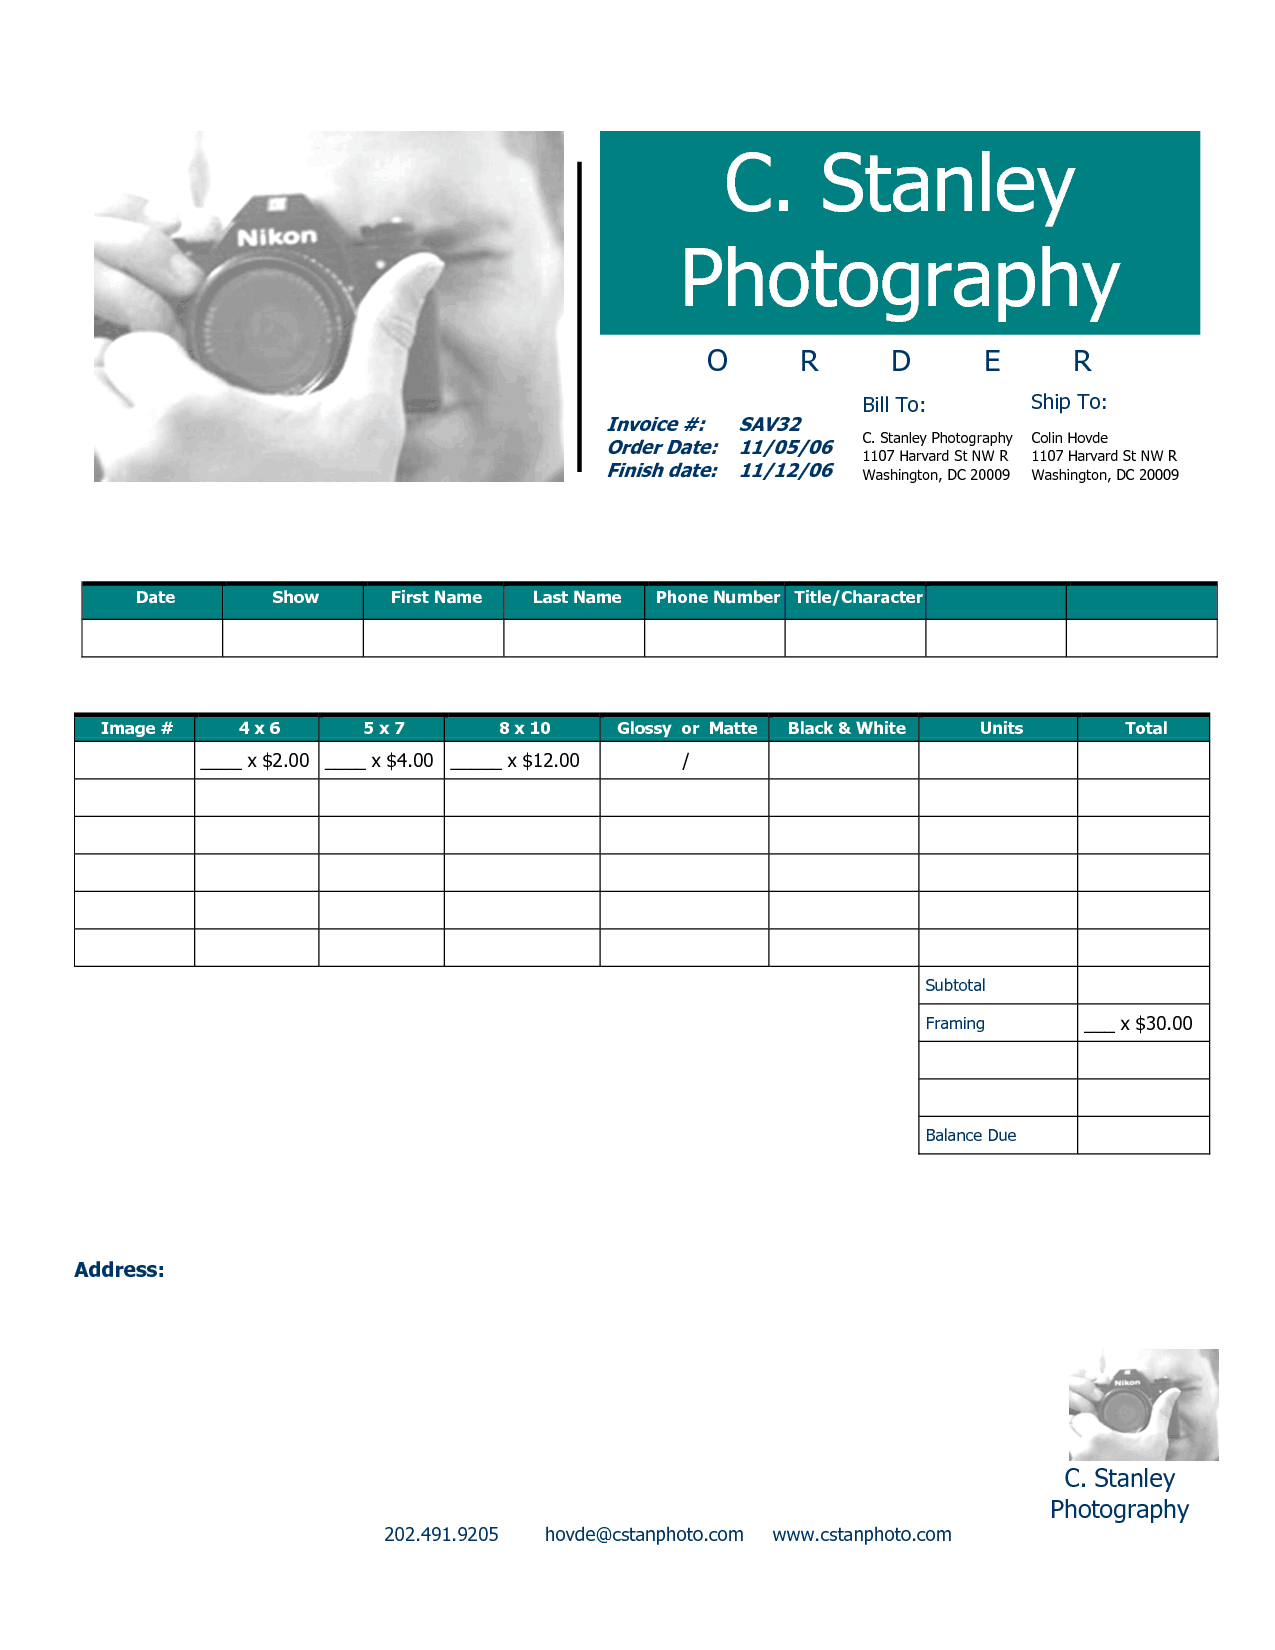 phottography invoice templaet 44